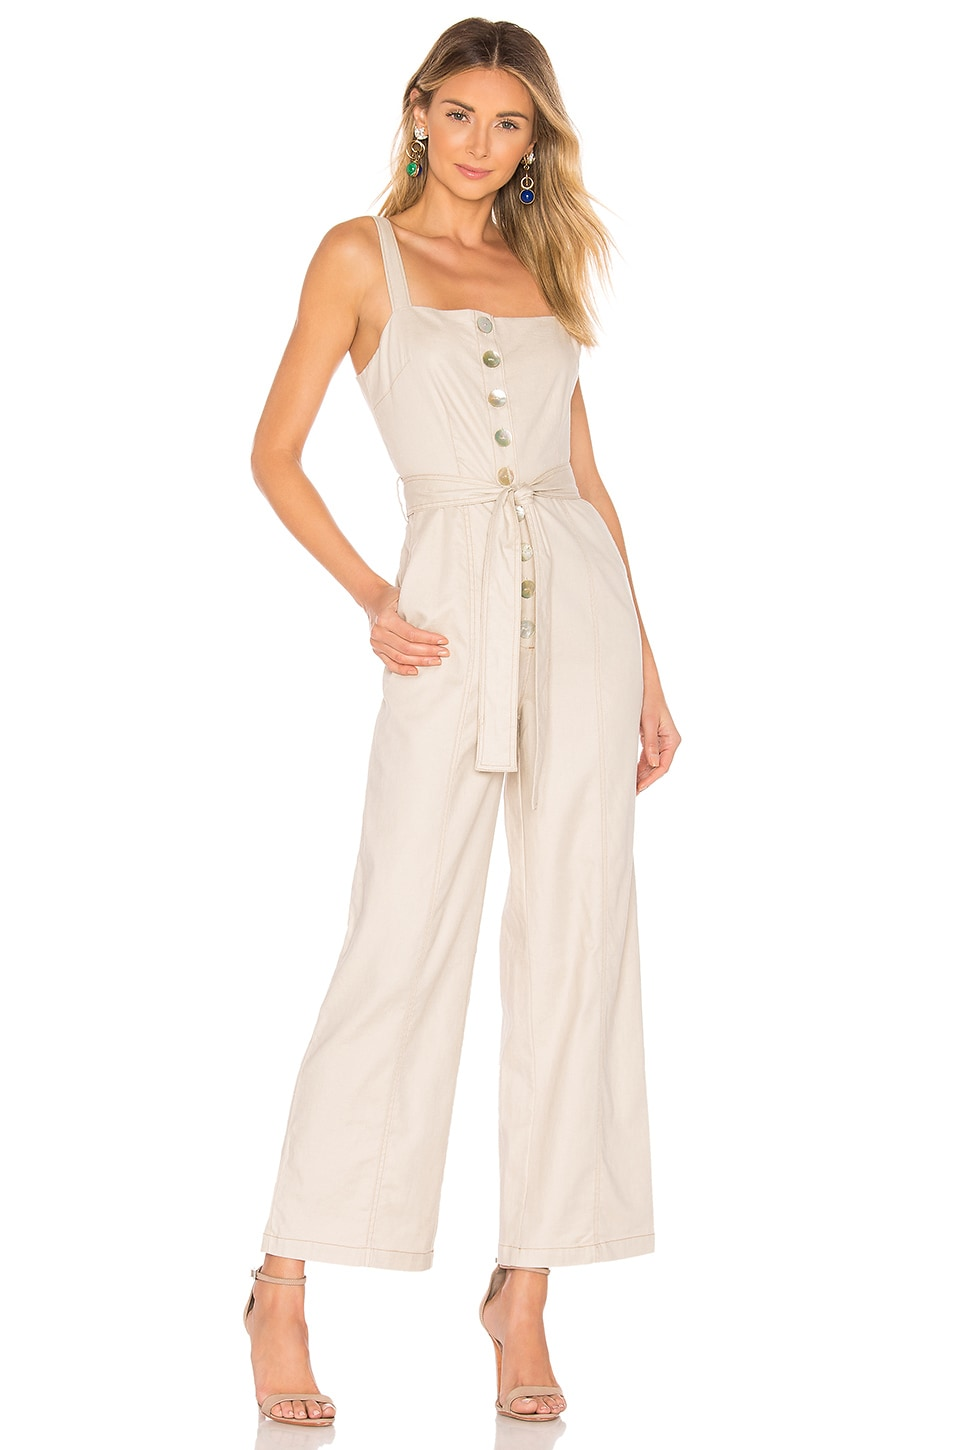 L'Academie The Evelyn Jumpsuit in Oatmeal